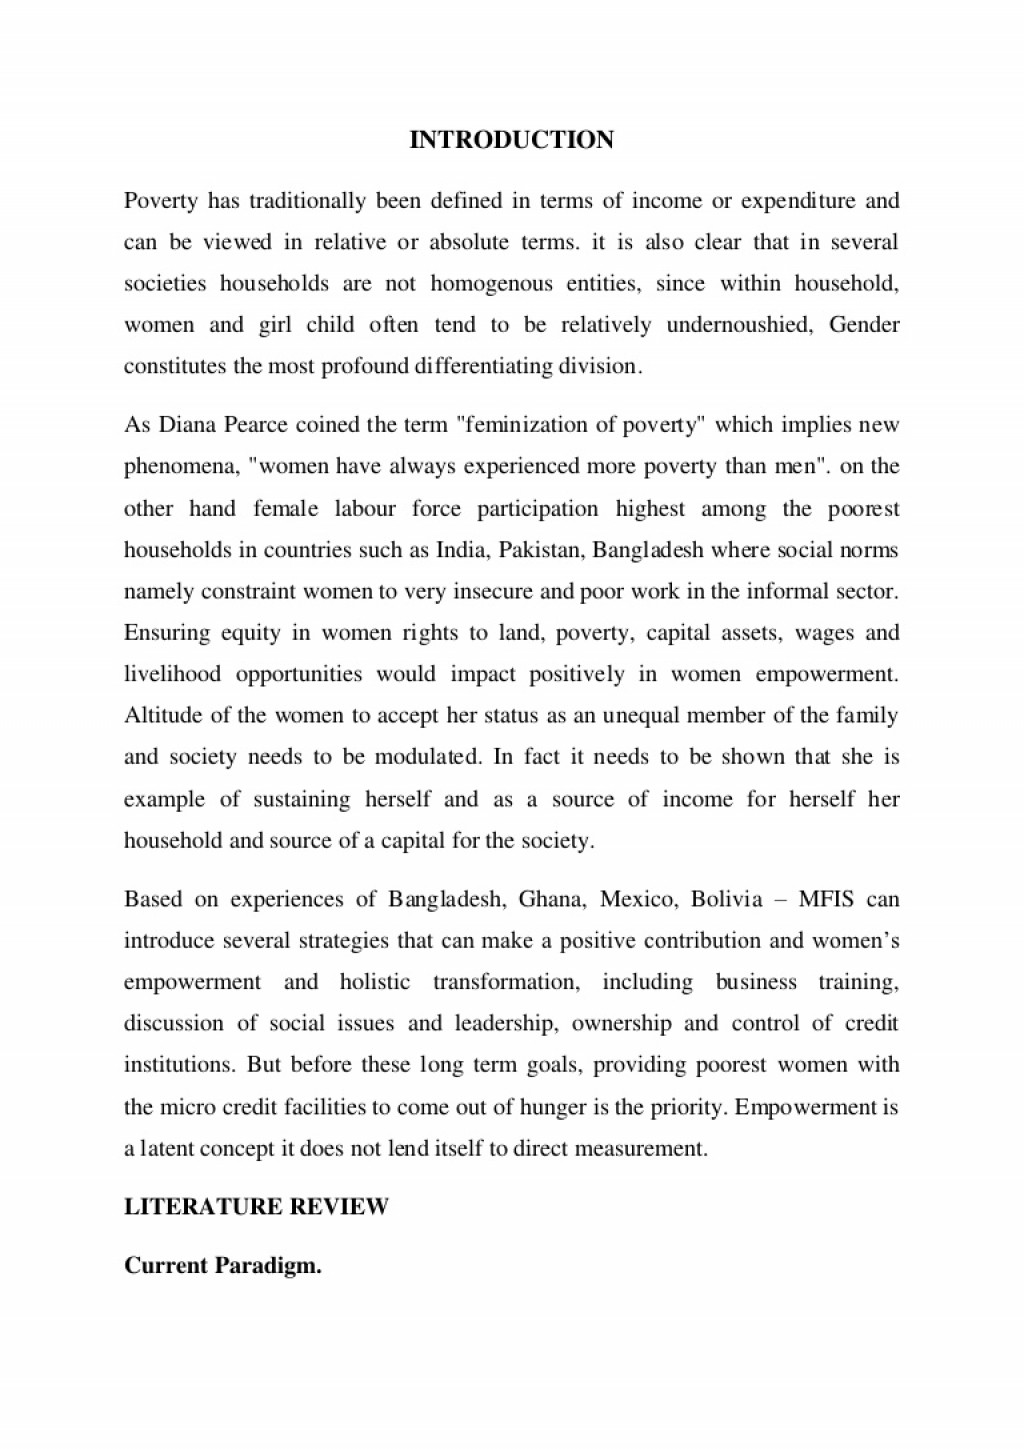 005 Essay Example Poverty Has Traditionally Been Defined In Terms Of Income Or Expenditure And Can Viewed Relative Absolute Prepared By Naresh Sehdev Phpapp01 Incredible On Women Women's Rights India Short Empowerment Large